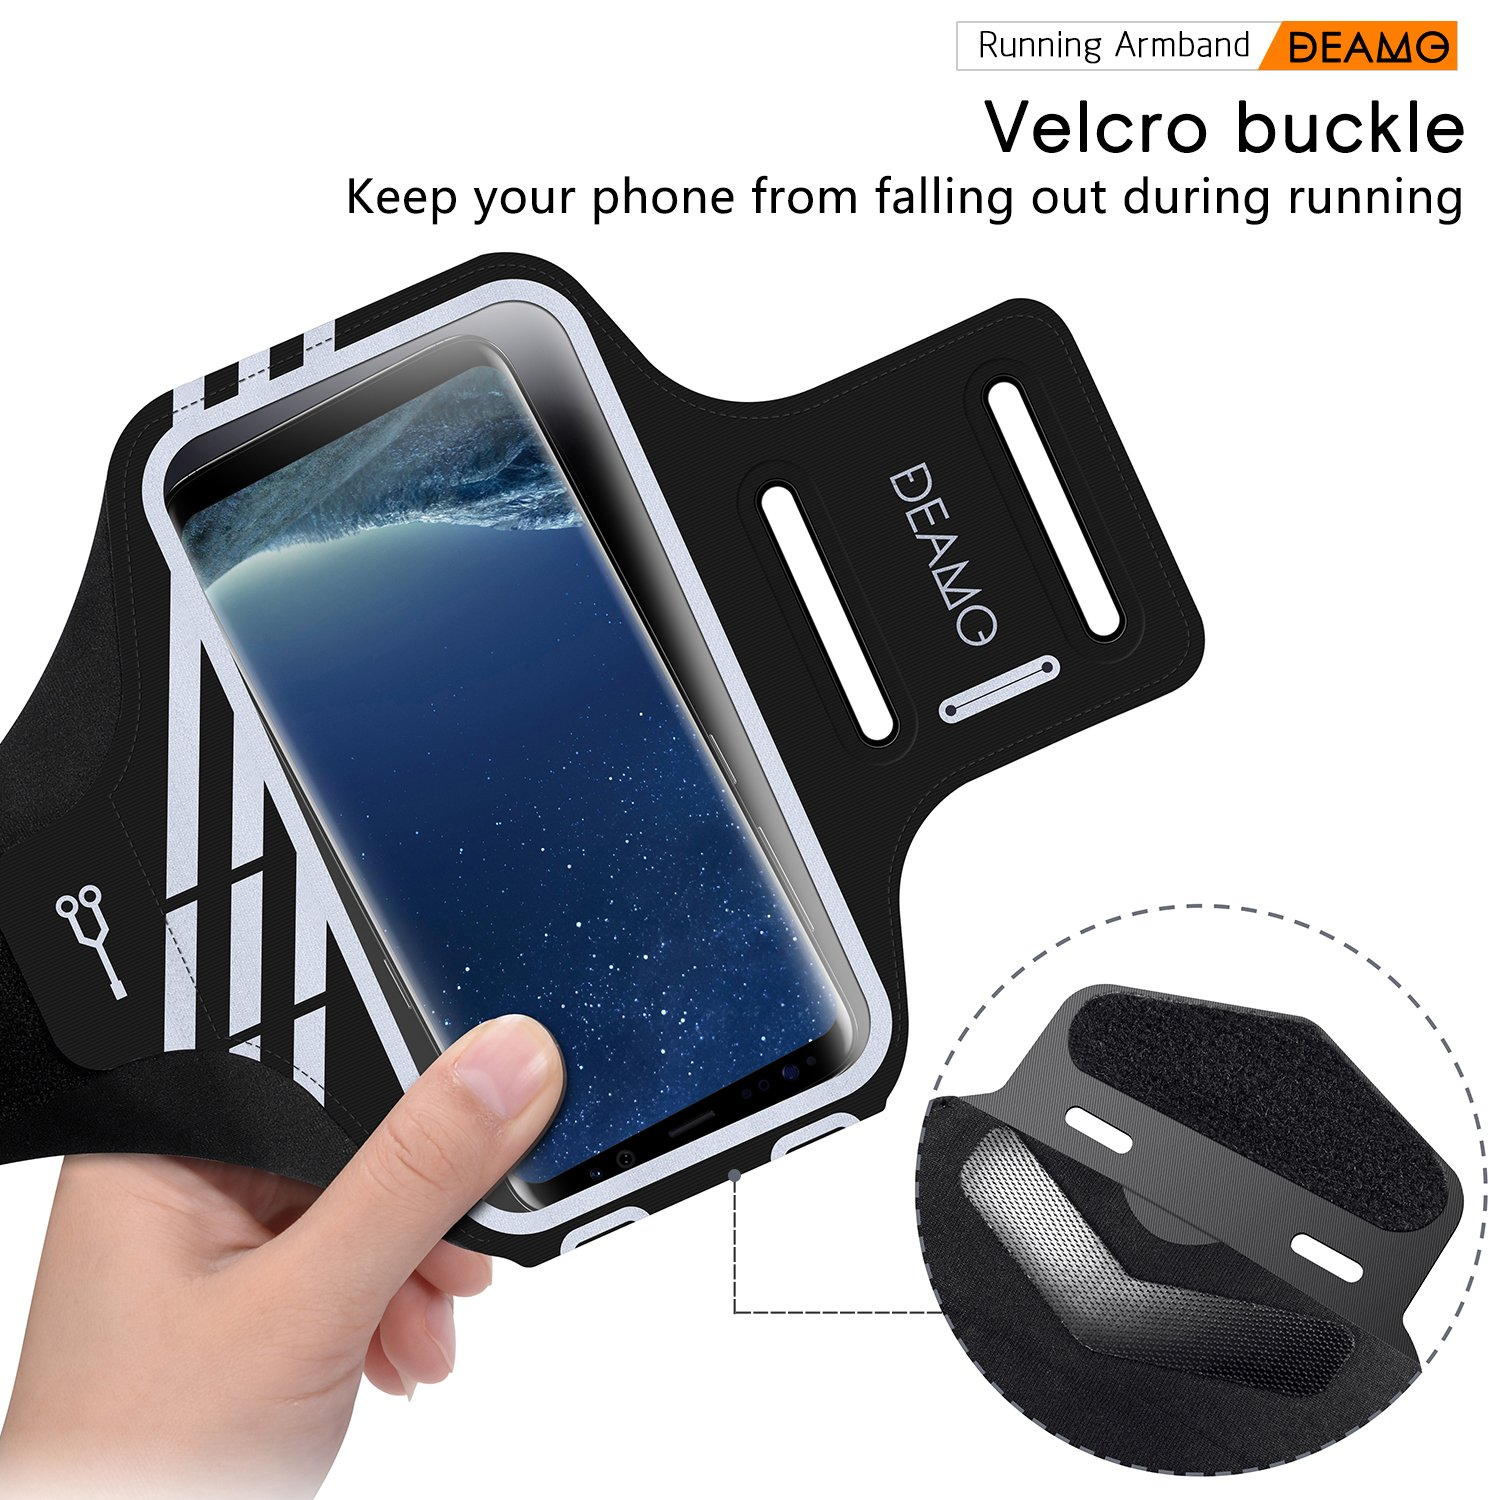 IPhone X, 8, 8+, 7, 7+, 6S, 6S+, 6, 6+ Samsung S8 S9 SPORTS Armband - Fingerprint Touch, Great for Running, Cycling or any Fitness Activity, Unique Hidden Pocket for Stores Cash, Cards and Keys. by Deamo (Image #2)